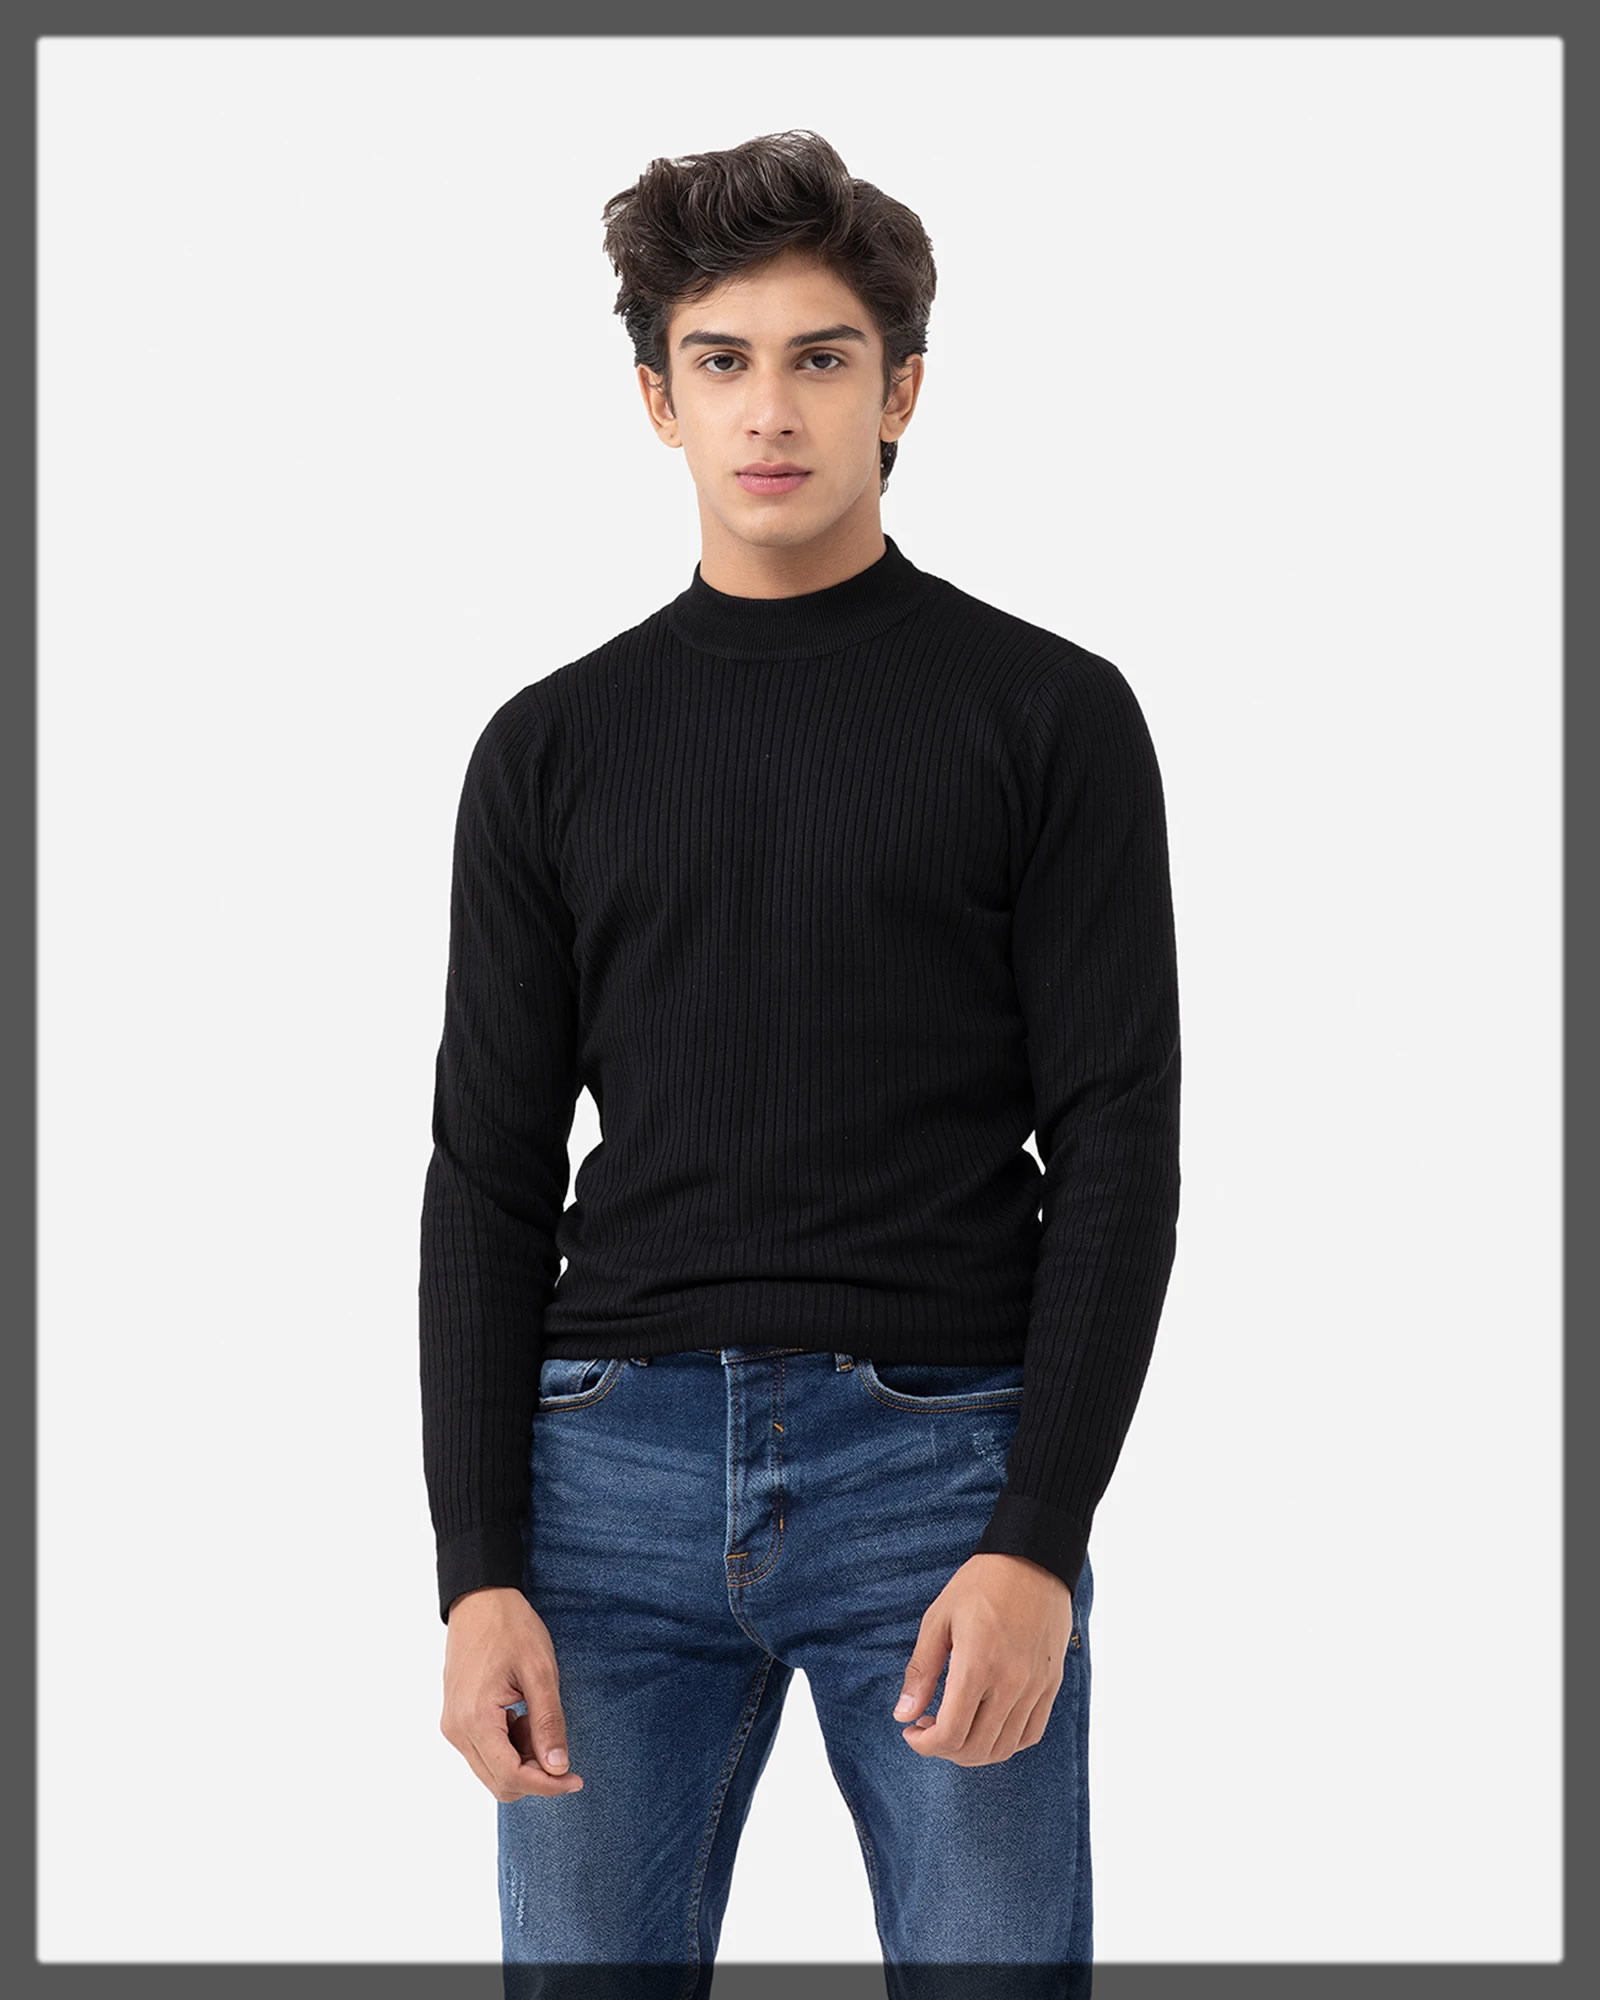 jet black men's sweater